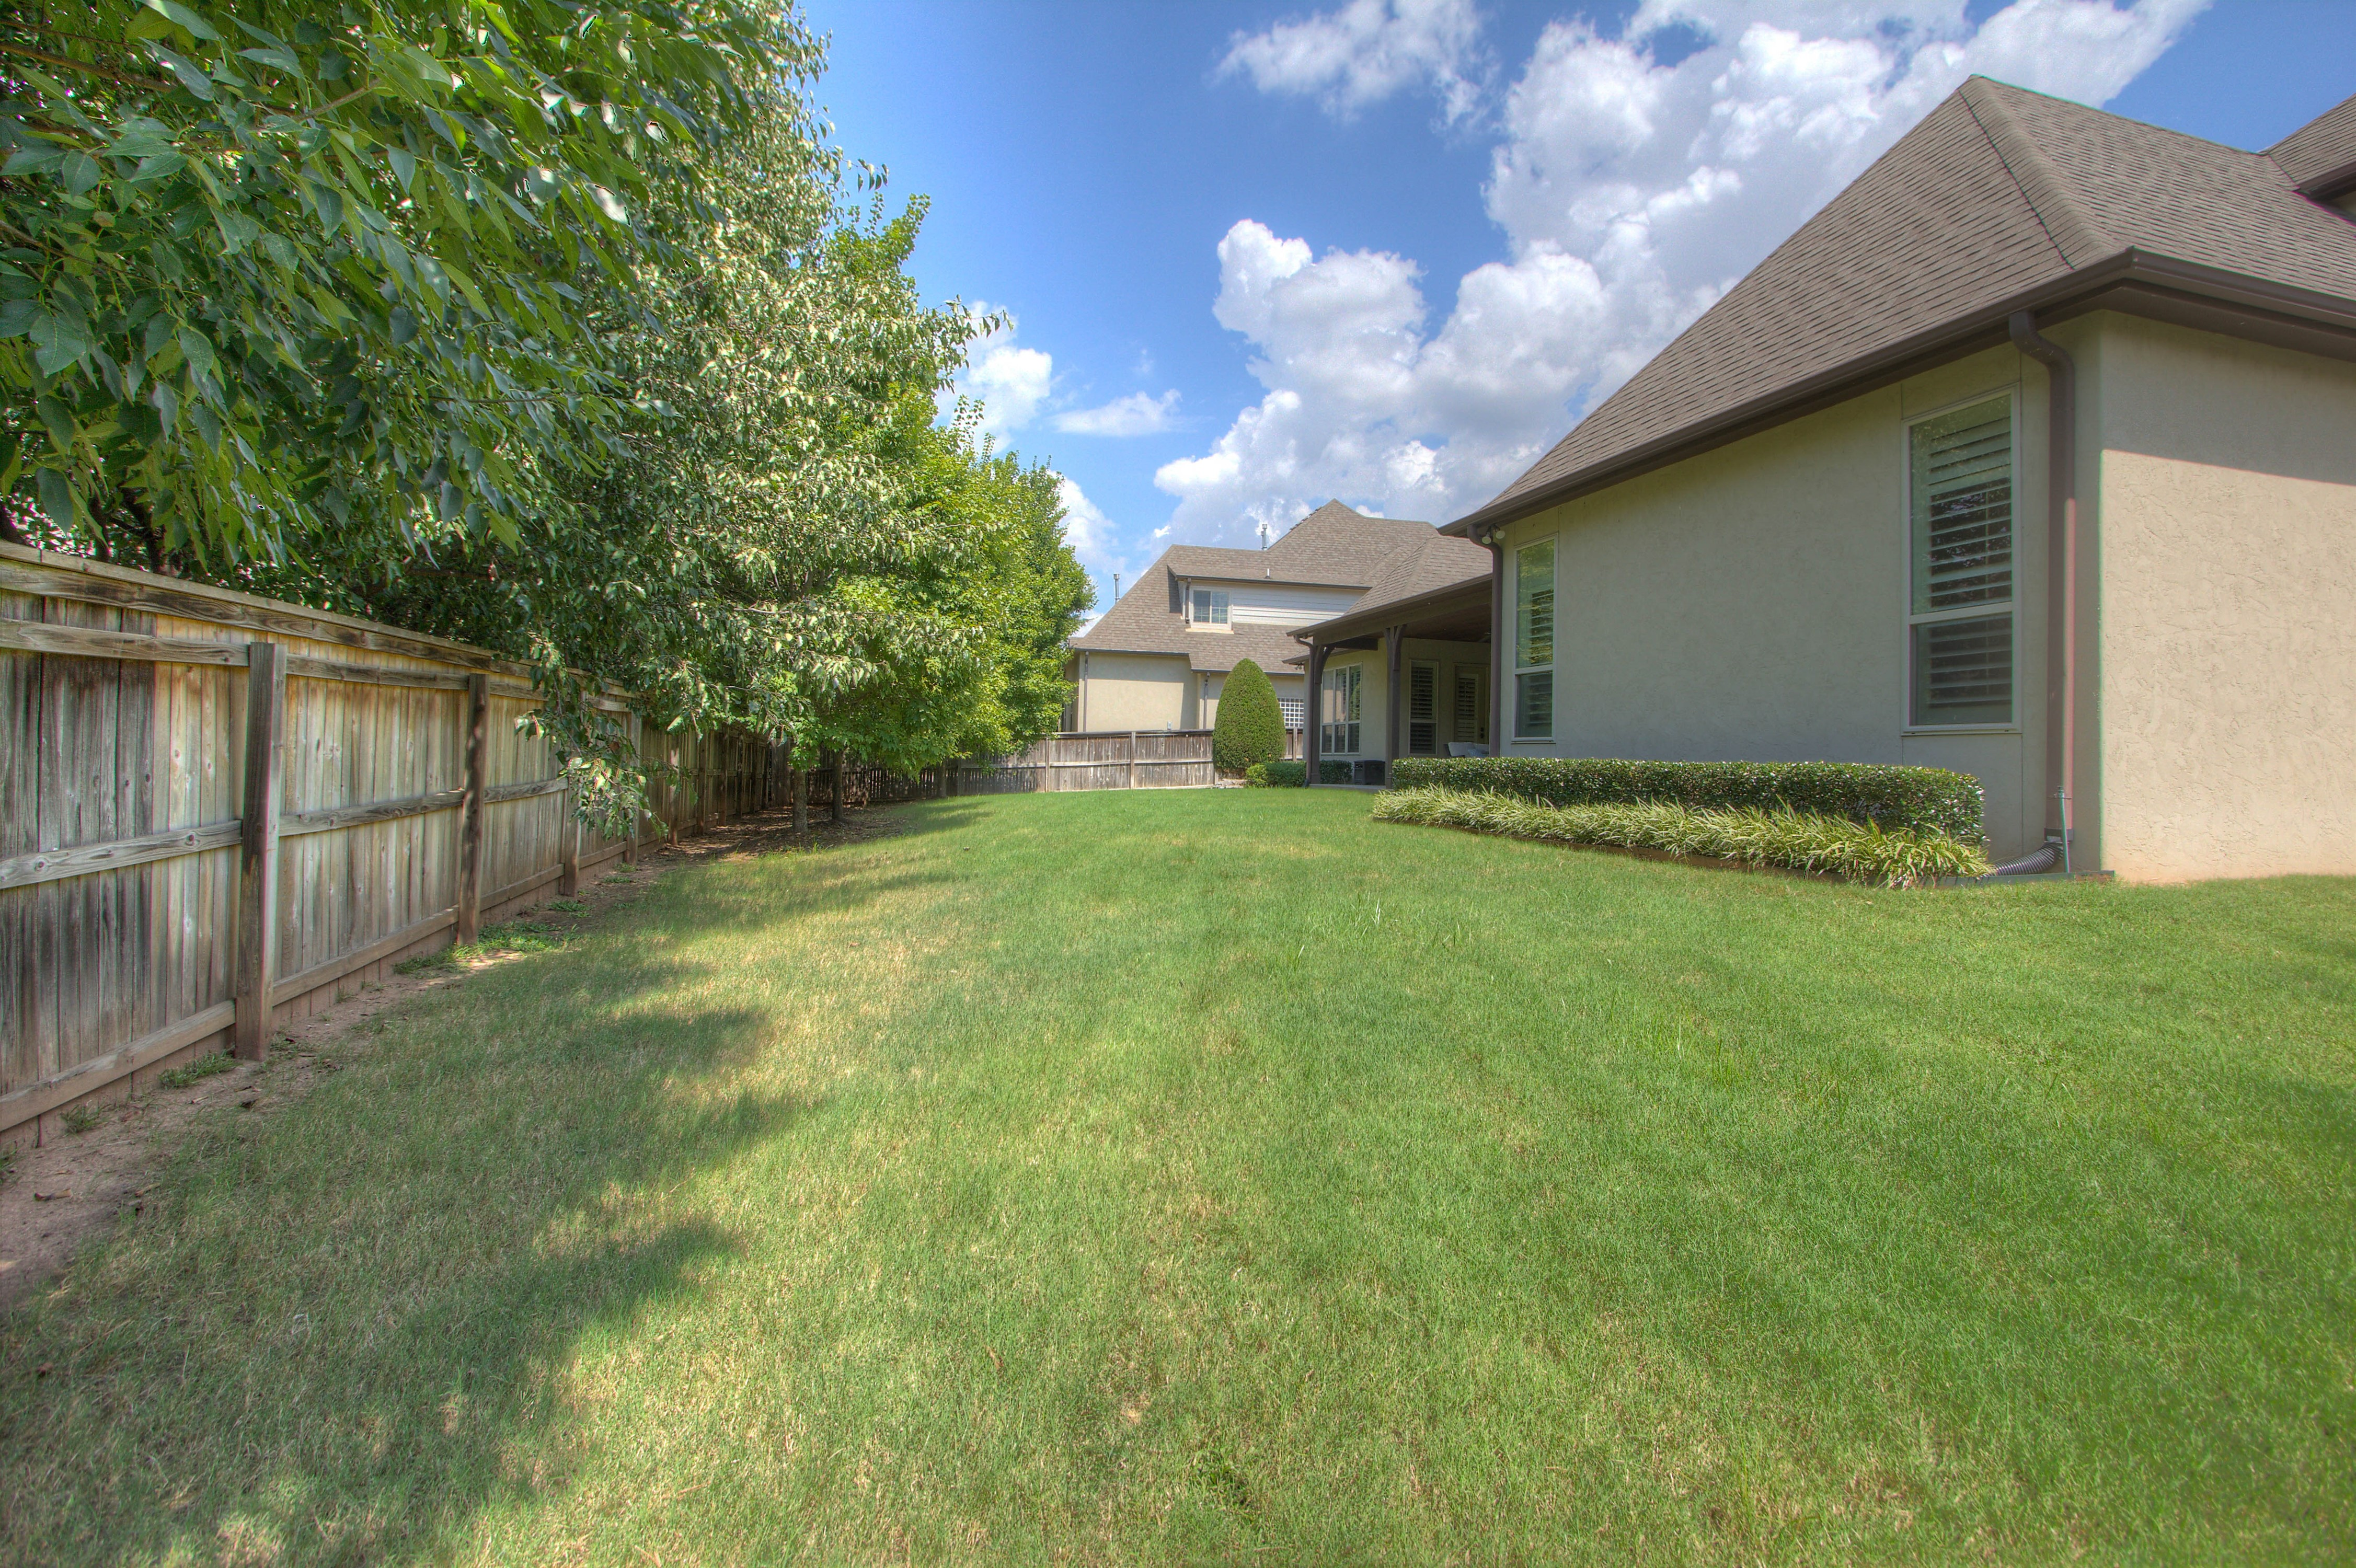 10960 S 93rd East Place Property Photo 45